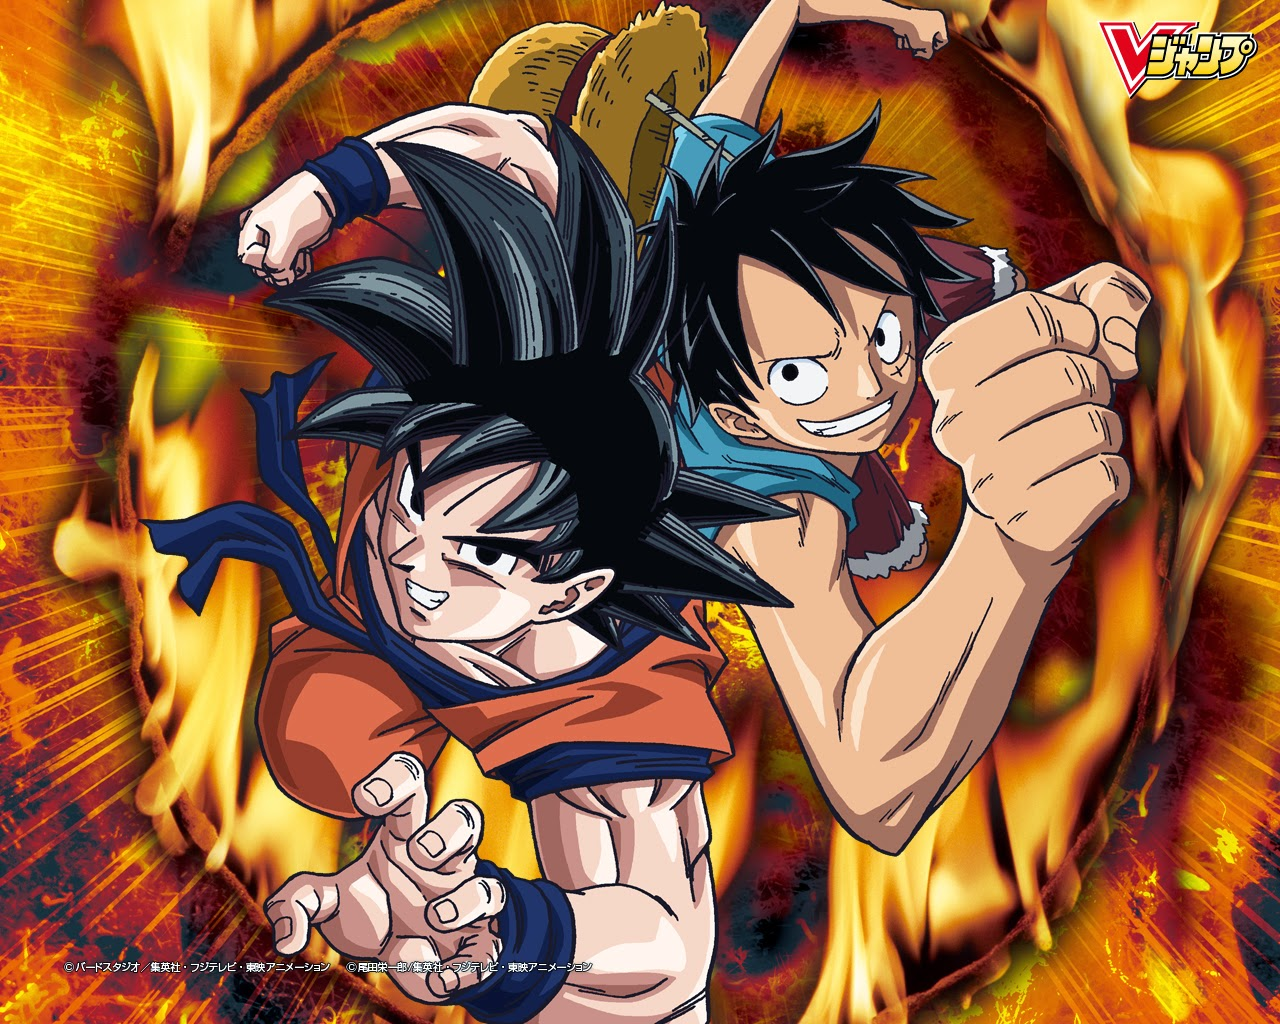 Hd Wallpapers Goku And Luffy One Piece Wallpaper Free For